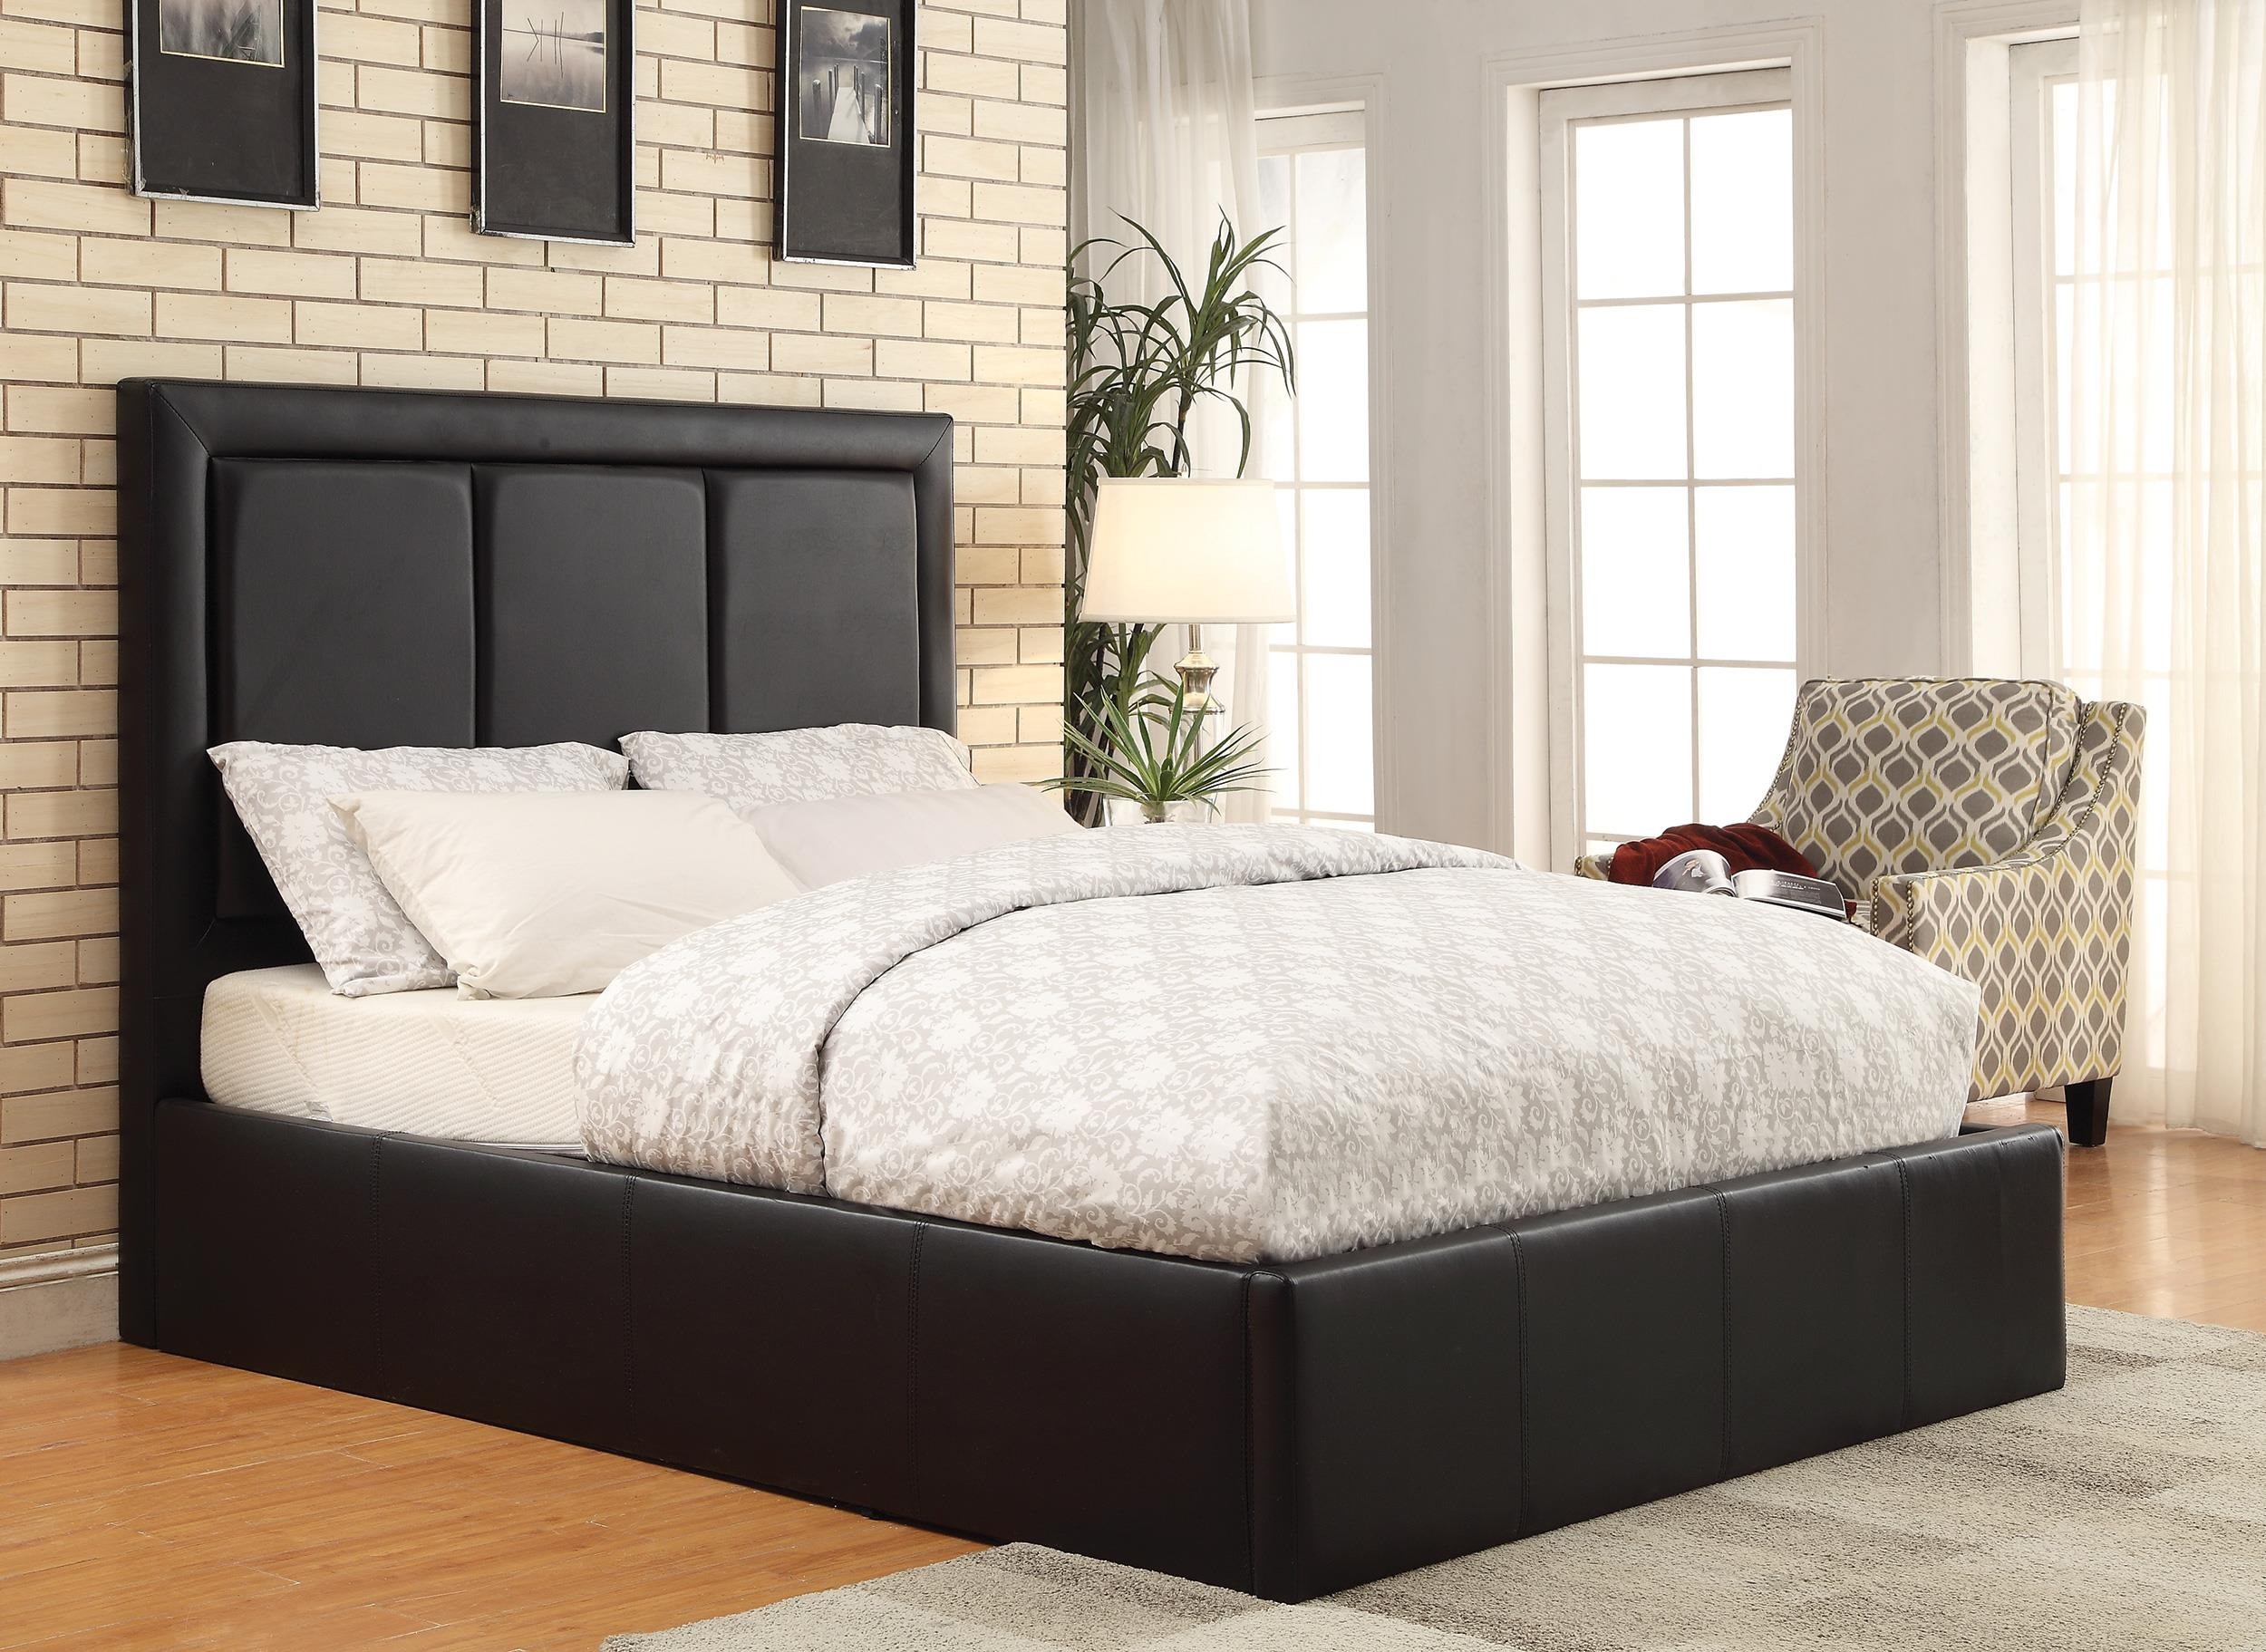 Coaster Upholstered Beds Queen Upholstered Bed - Item Number: 300493Q